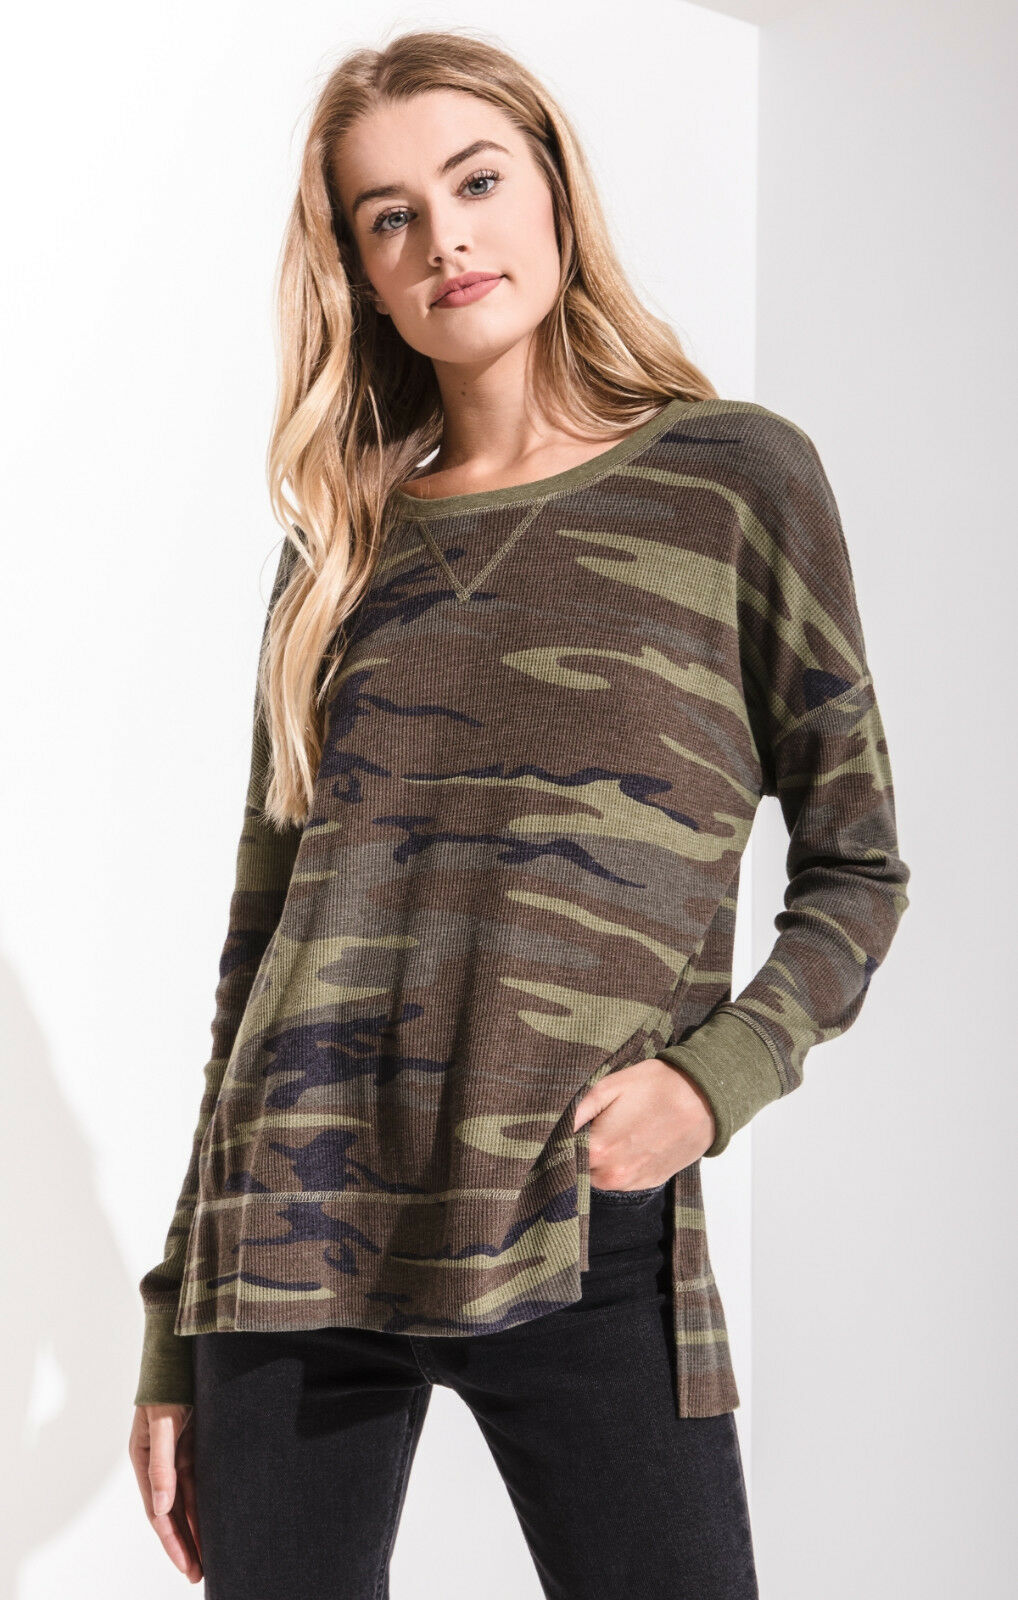 Z SUPPLY damen EMERSON CAMO WAFFLE THERMAL TOP 2 FarbeS NWT